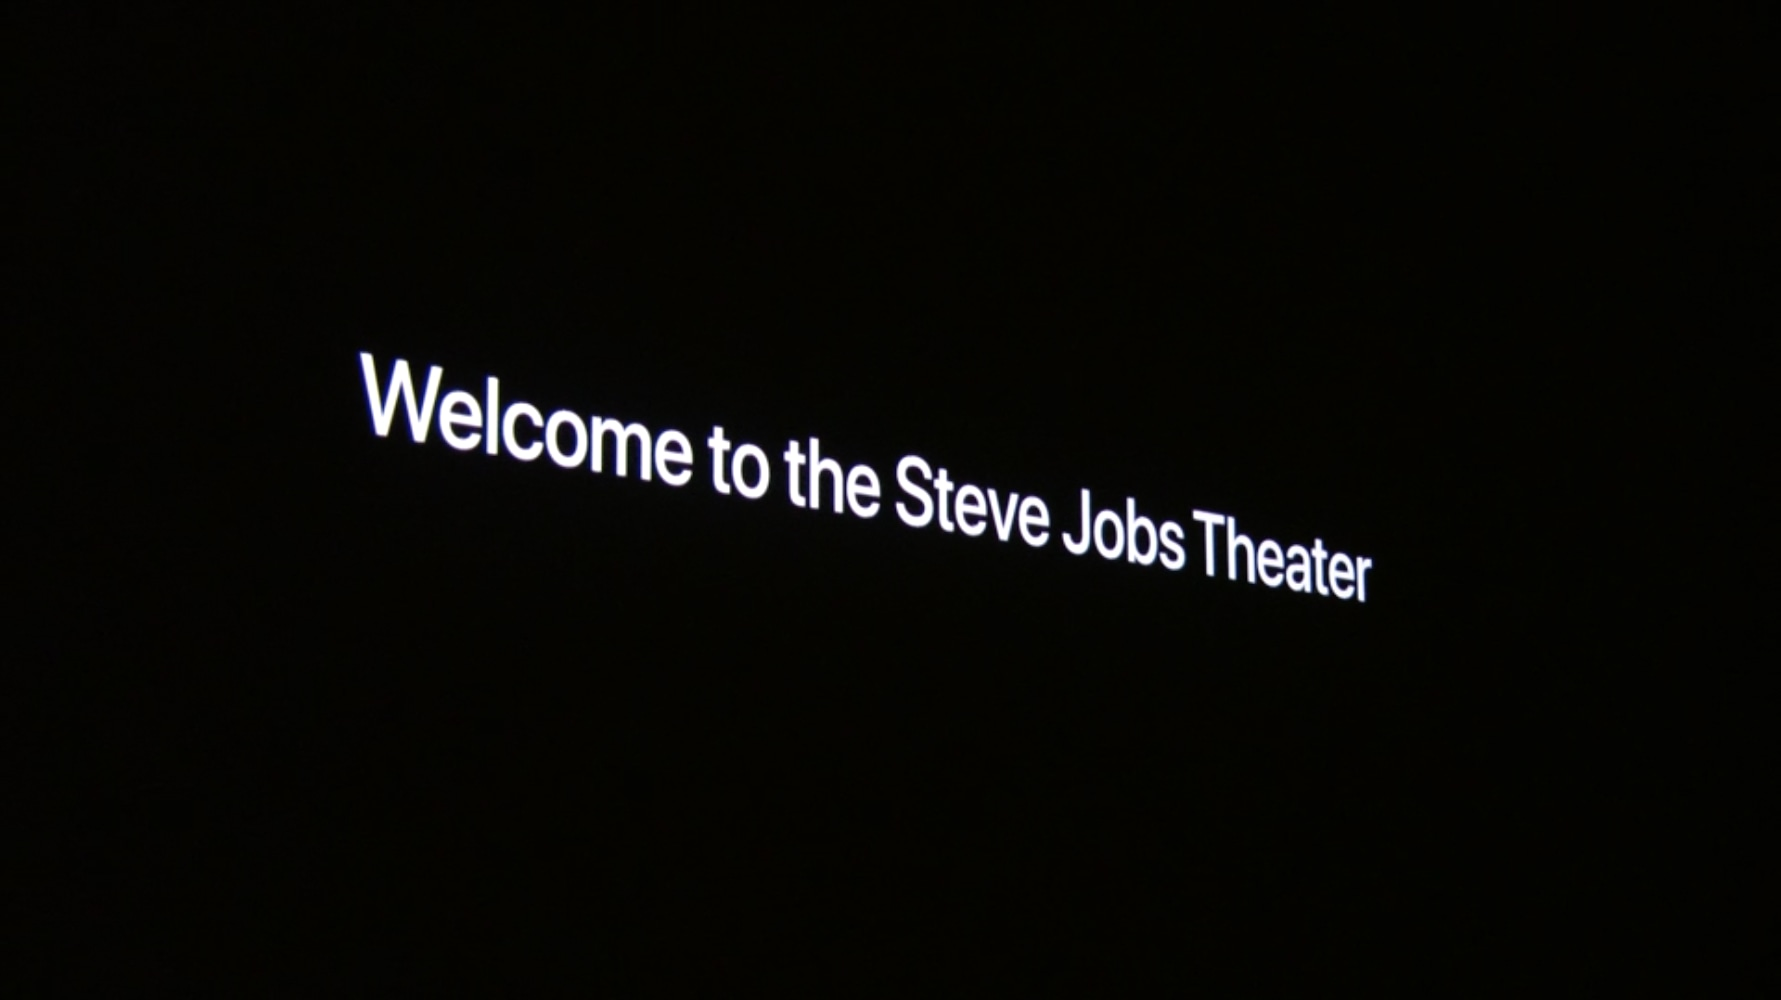 Welcome to Steve Jobs Theater